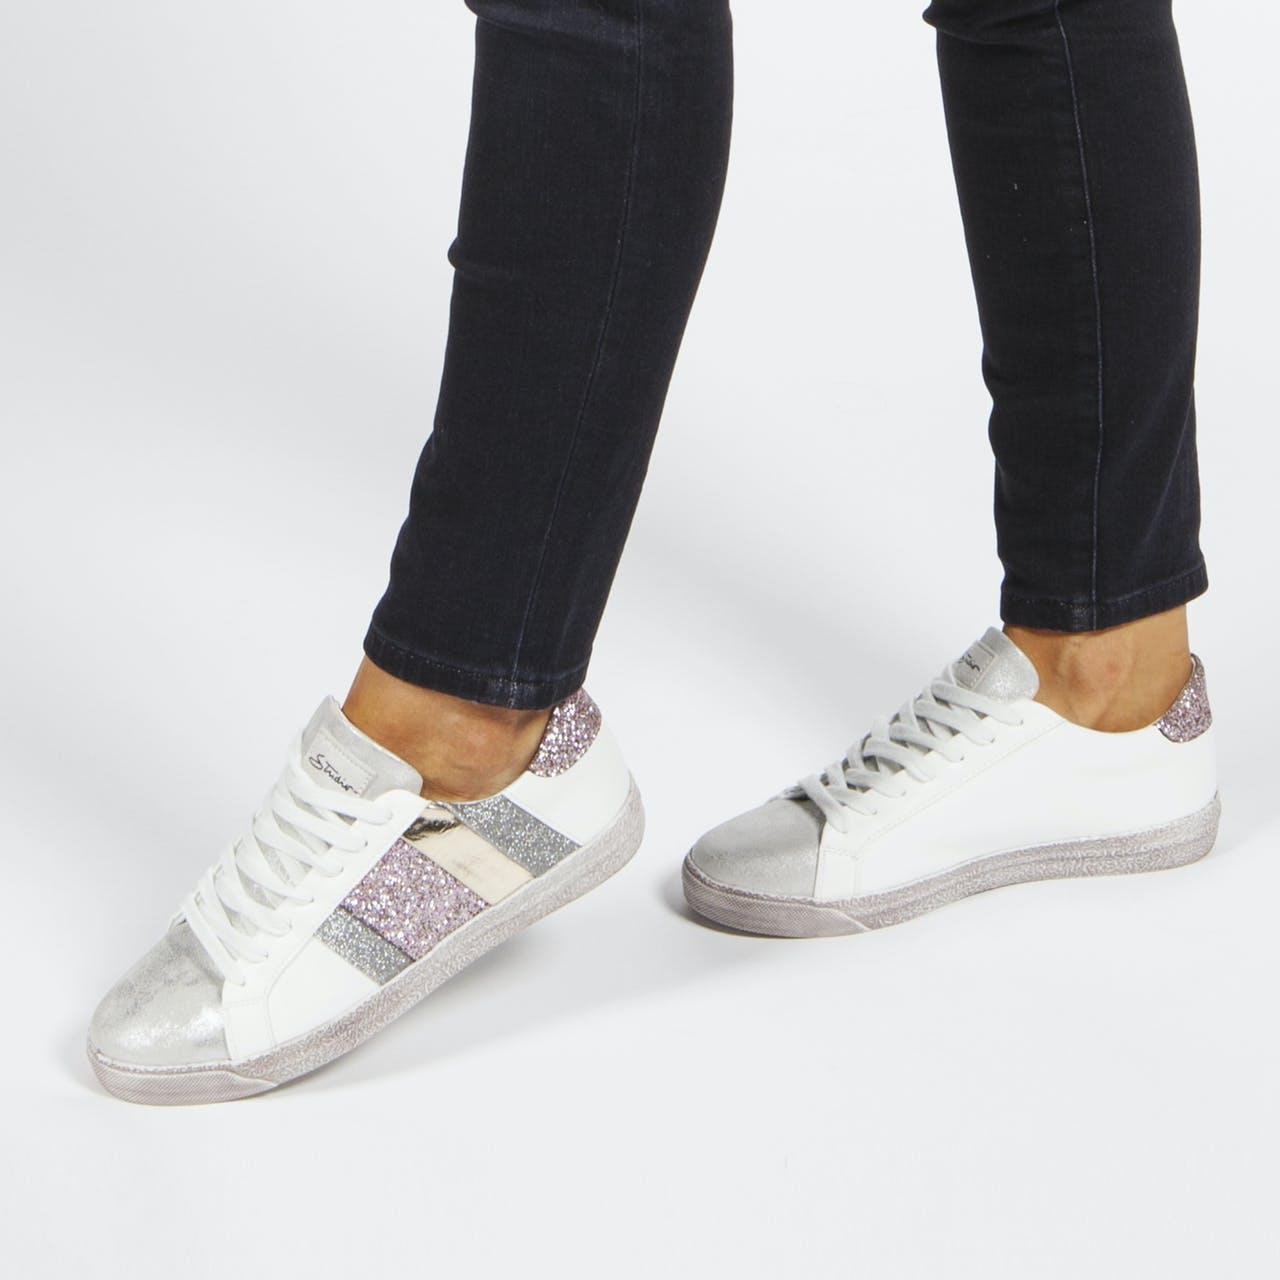 White Trainers with Pink Glitter Details